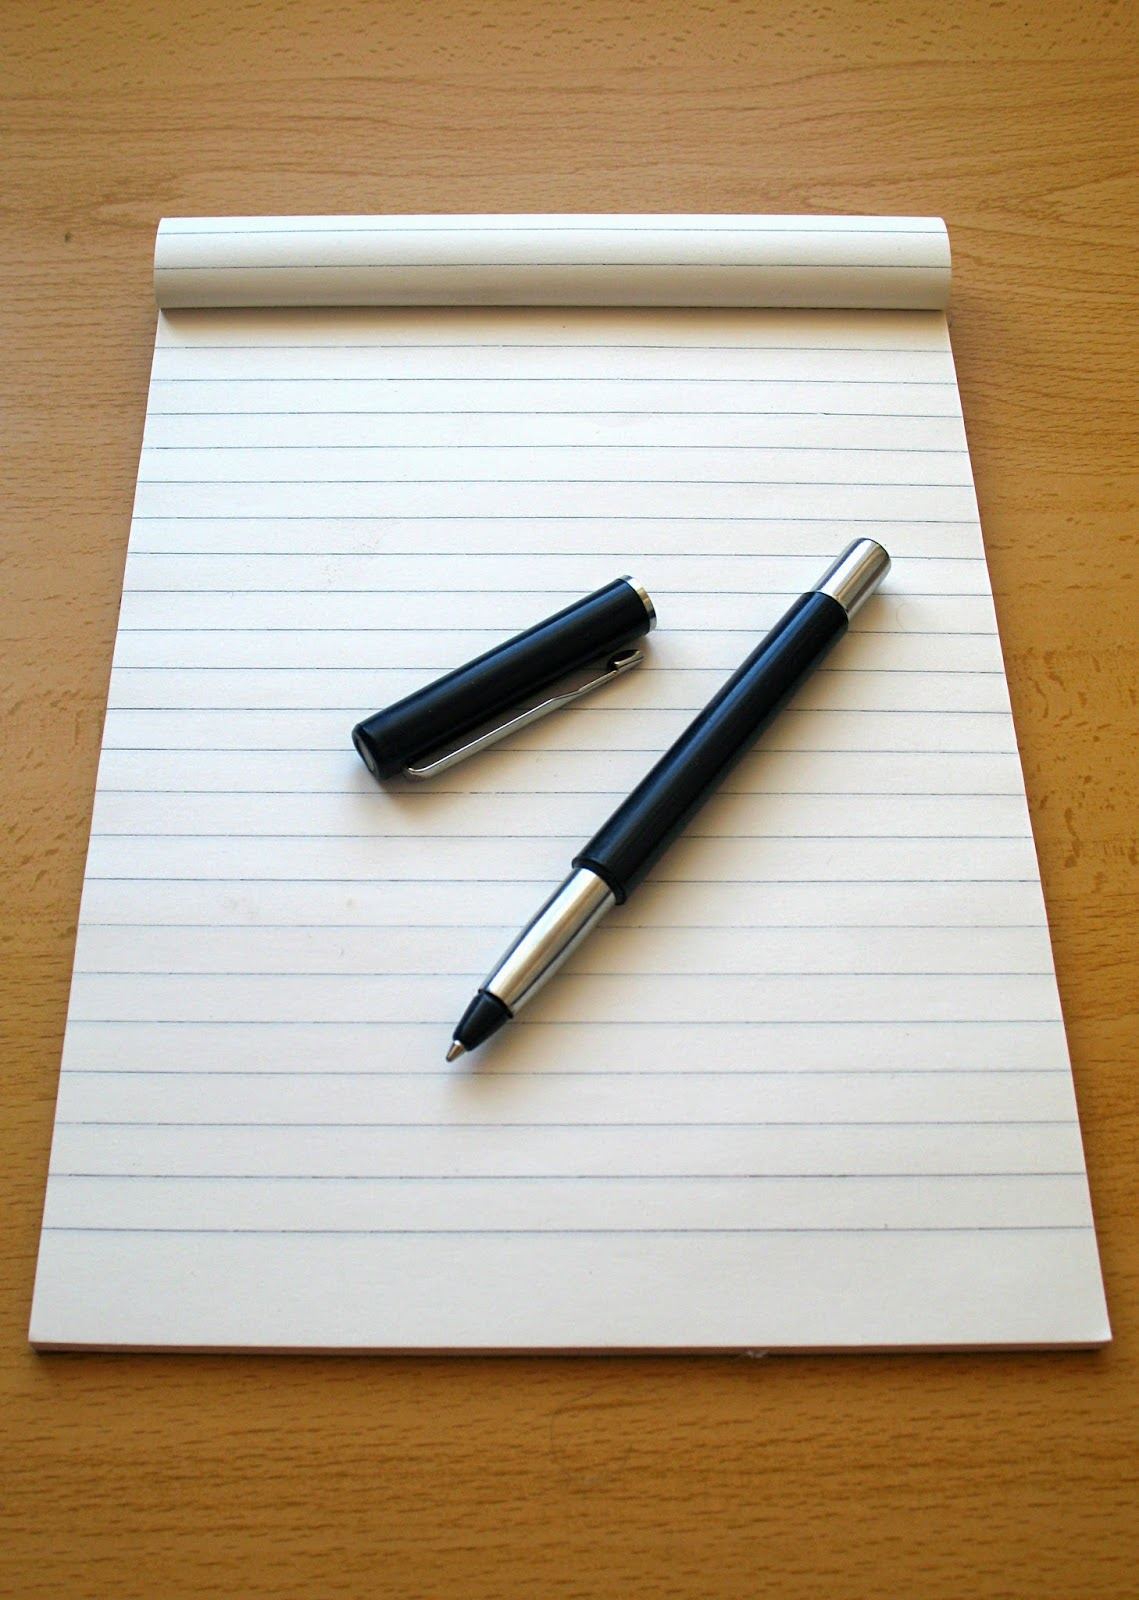 a picture of a pen on a paper notebook